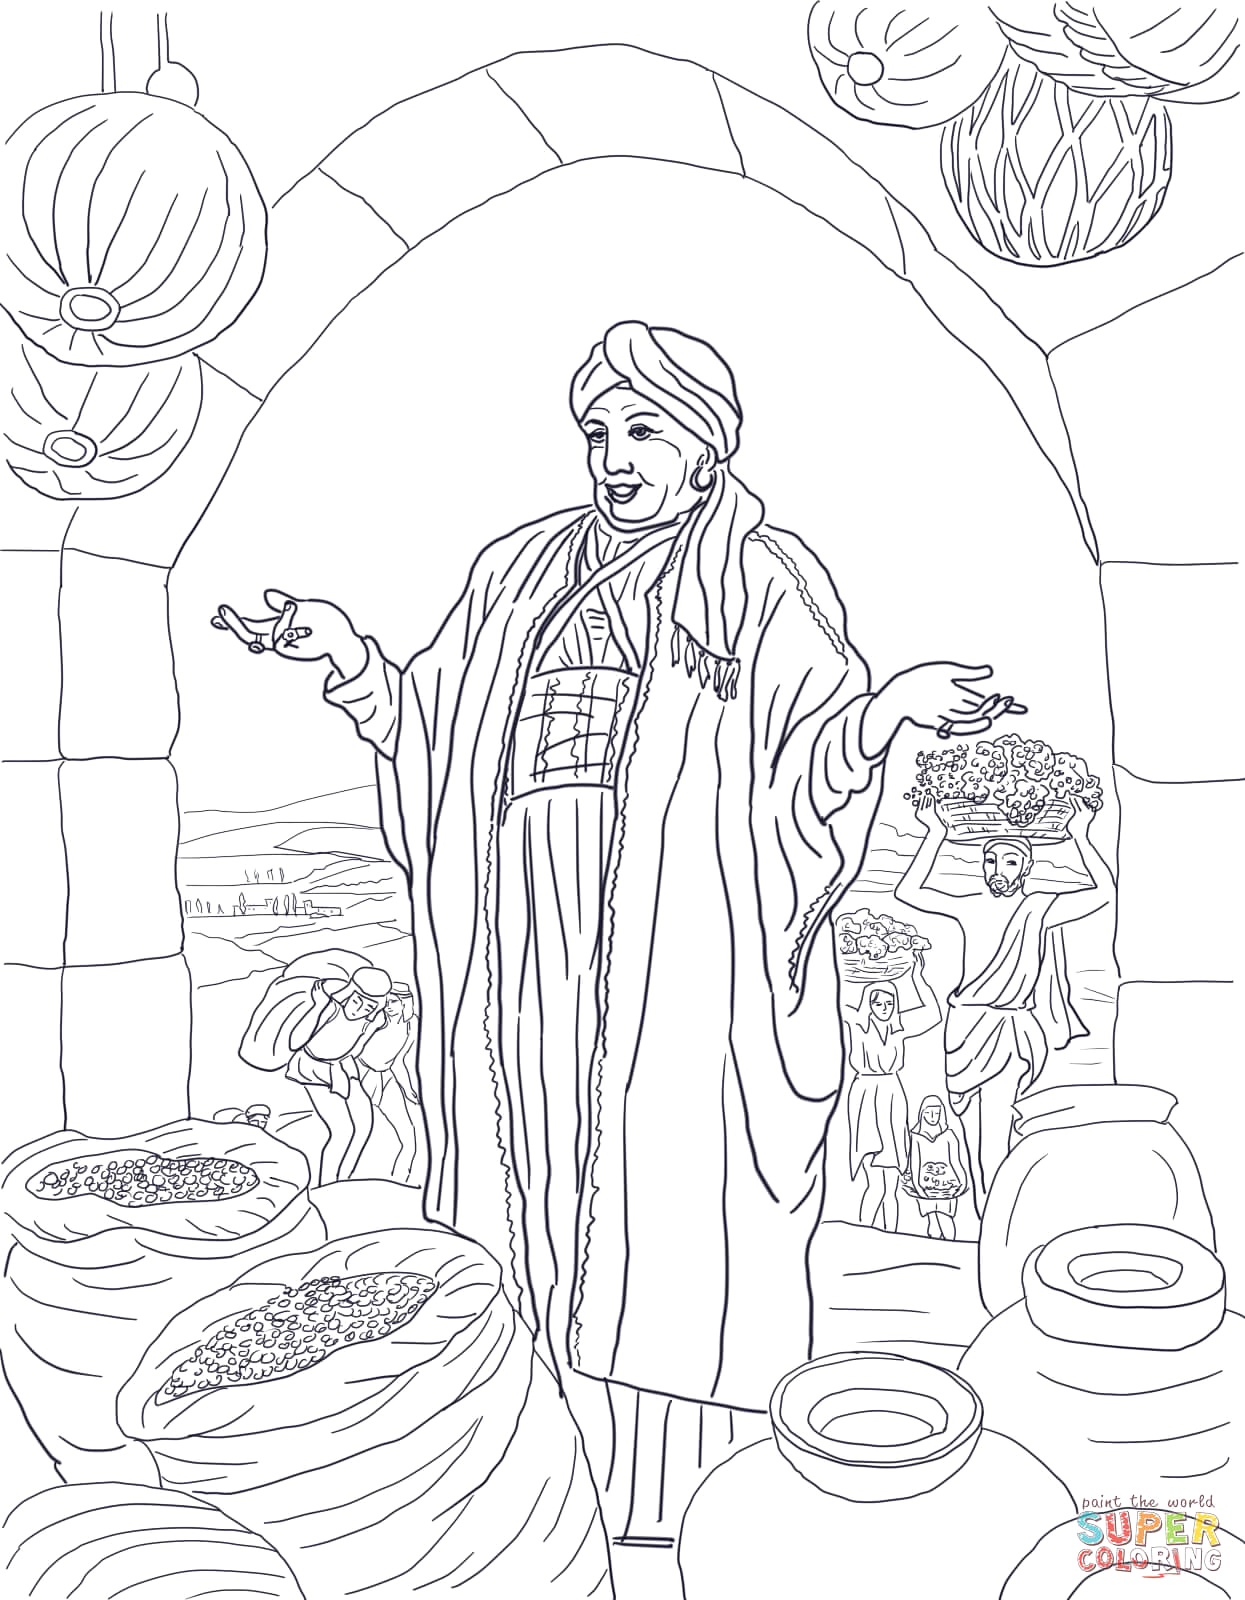 Parable Of the Rich Fool Coloring Page Parable the Rich Fool Coloring Page